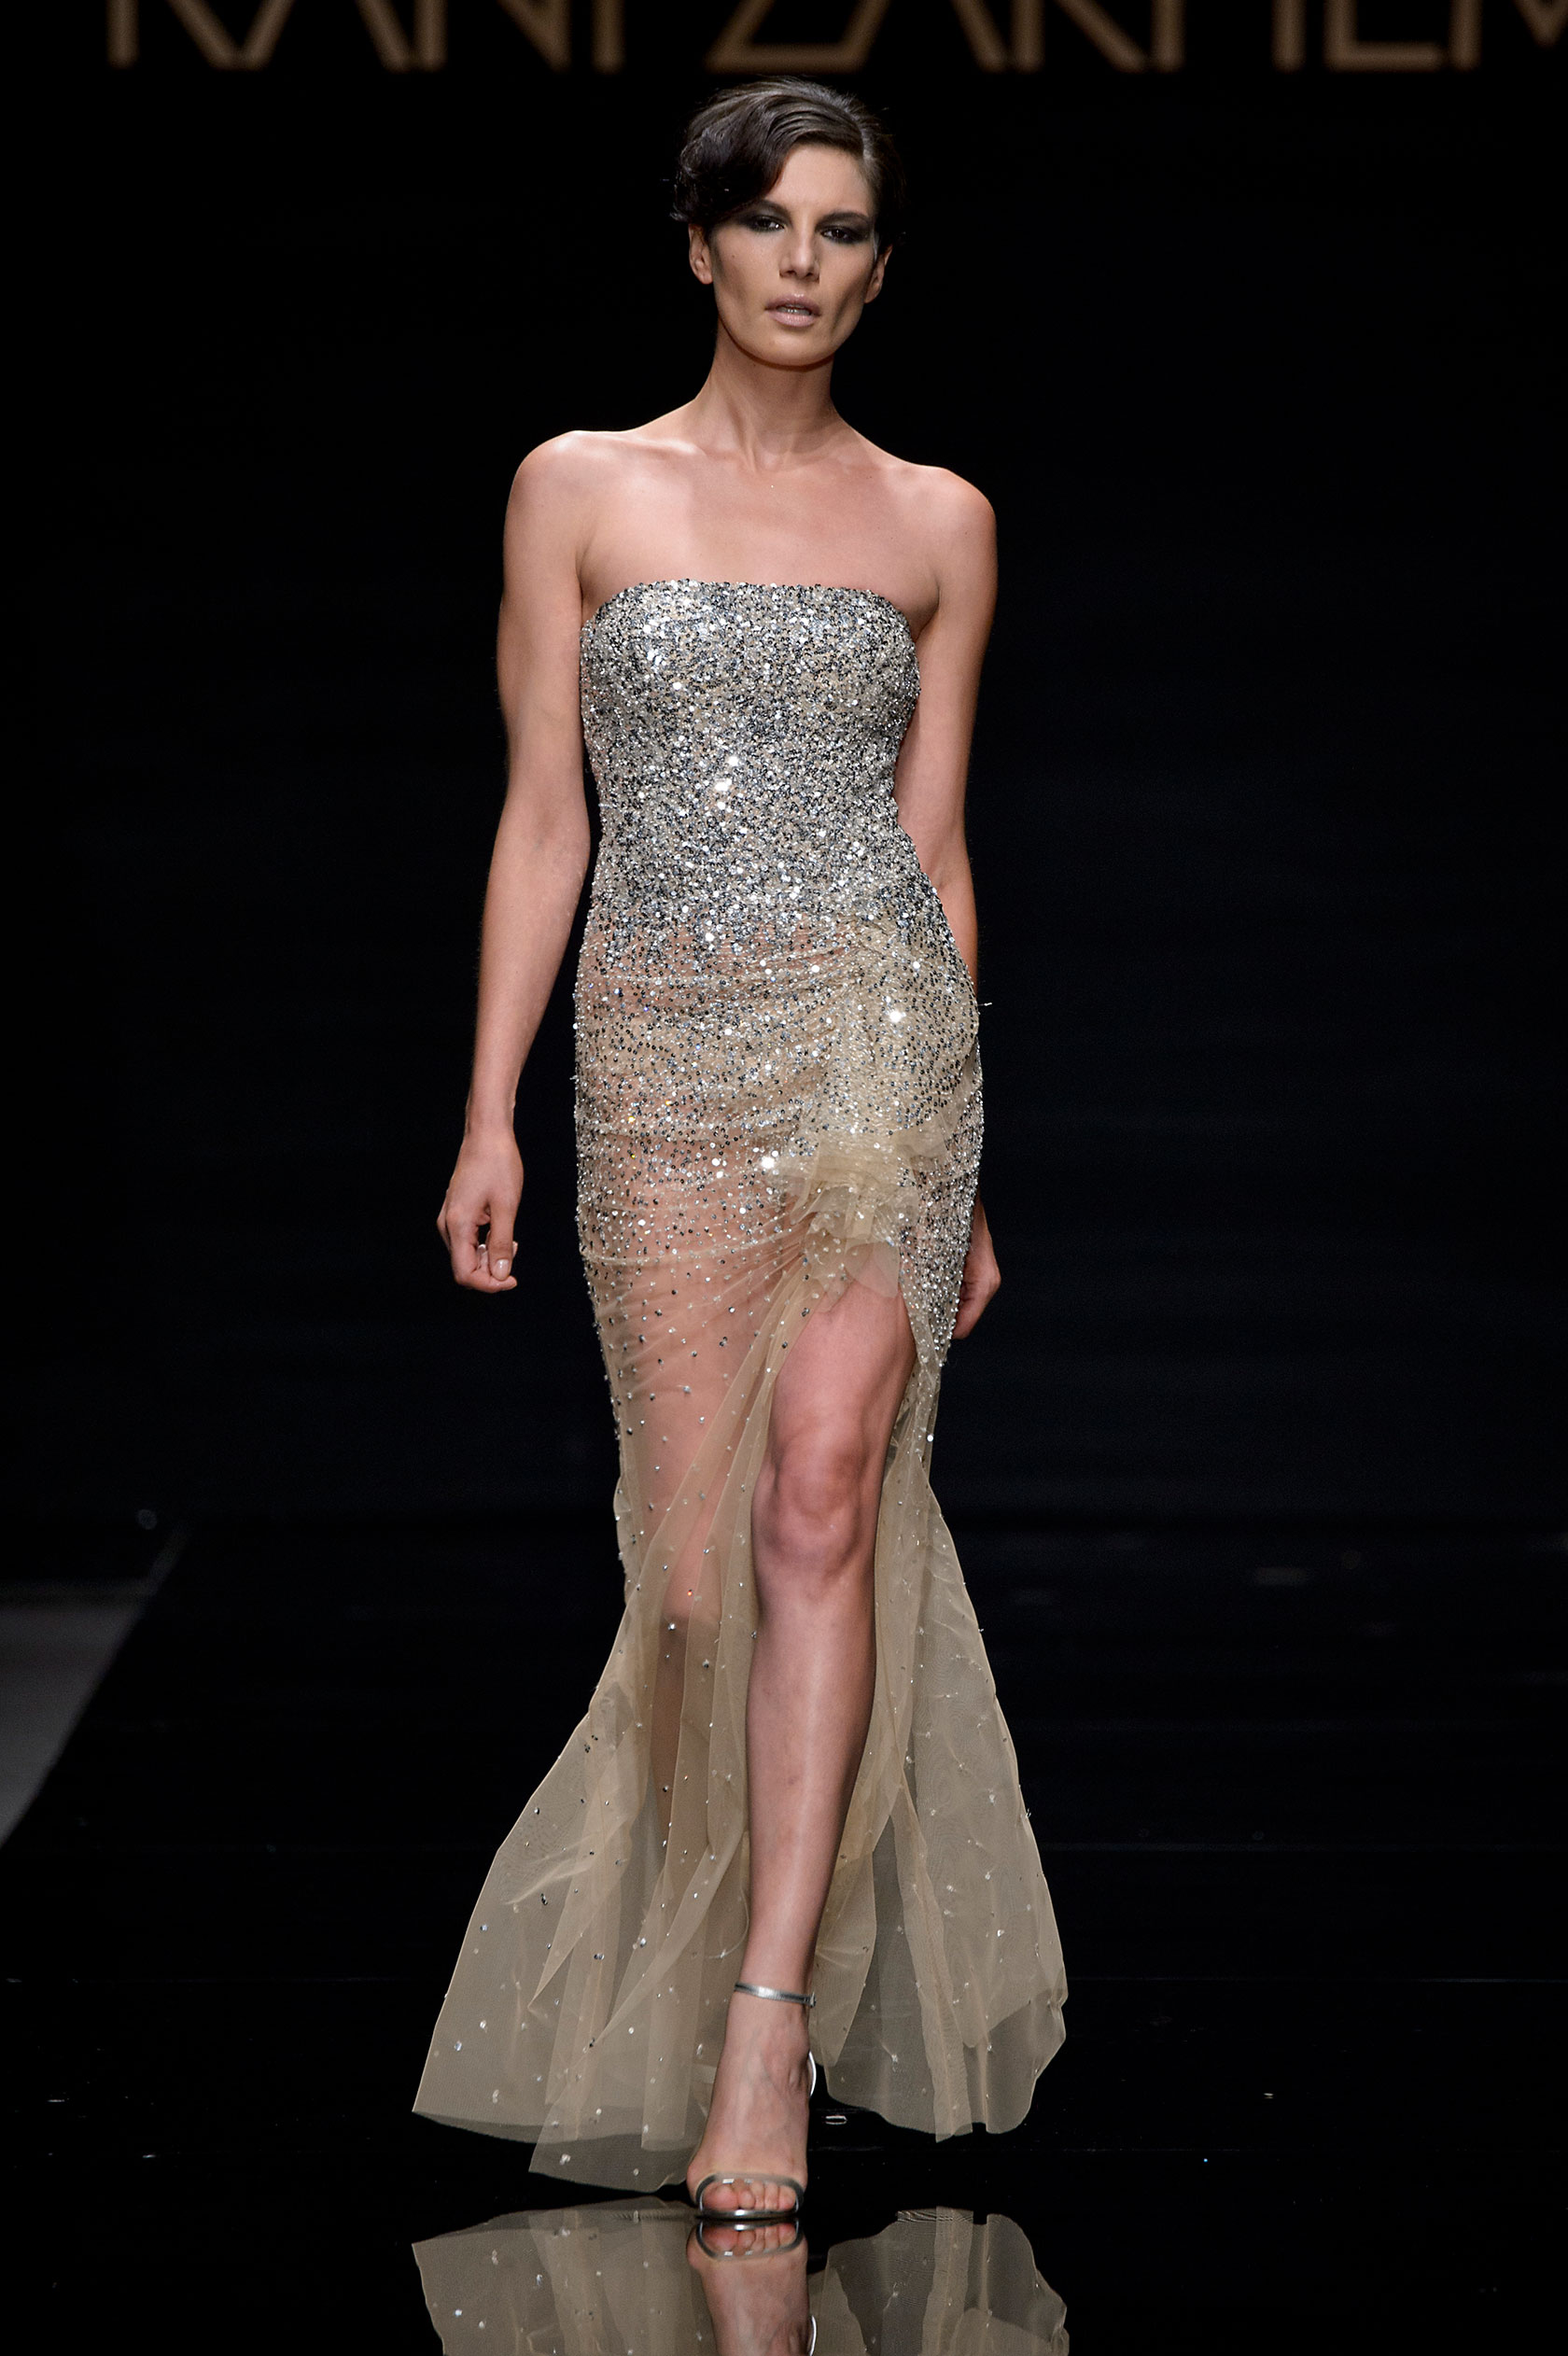 Rani Zakhem Haute Couture– Rani Zakhem Haute couture collection ...